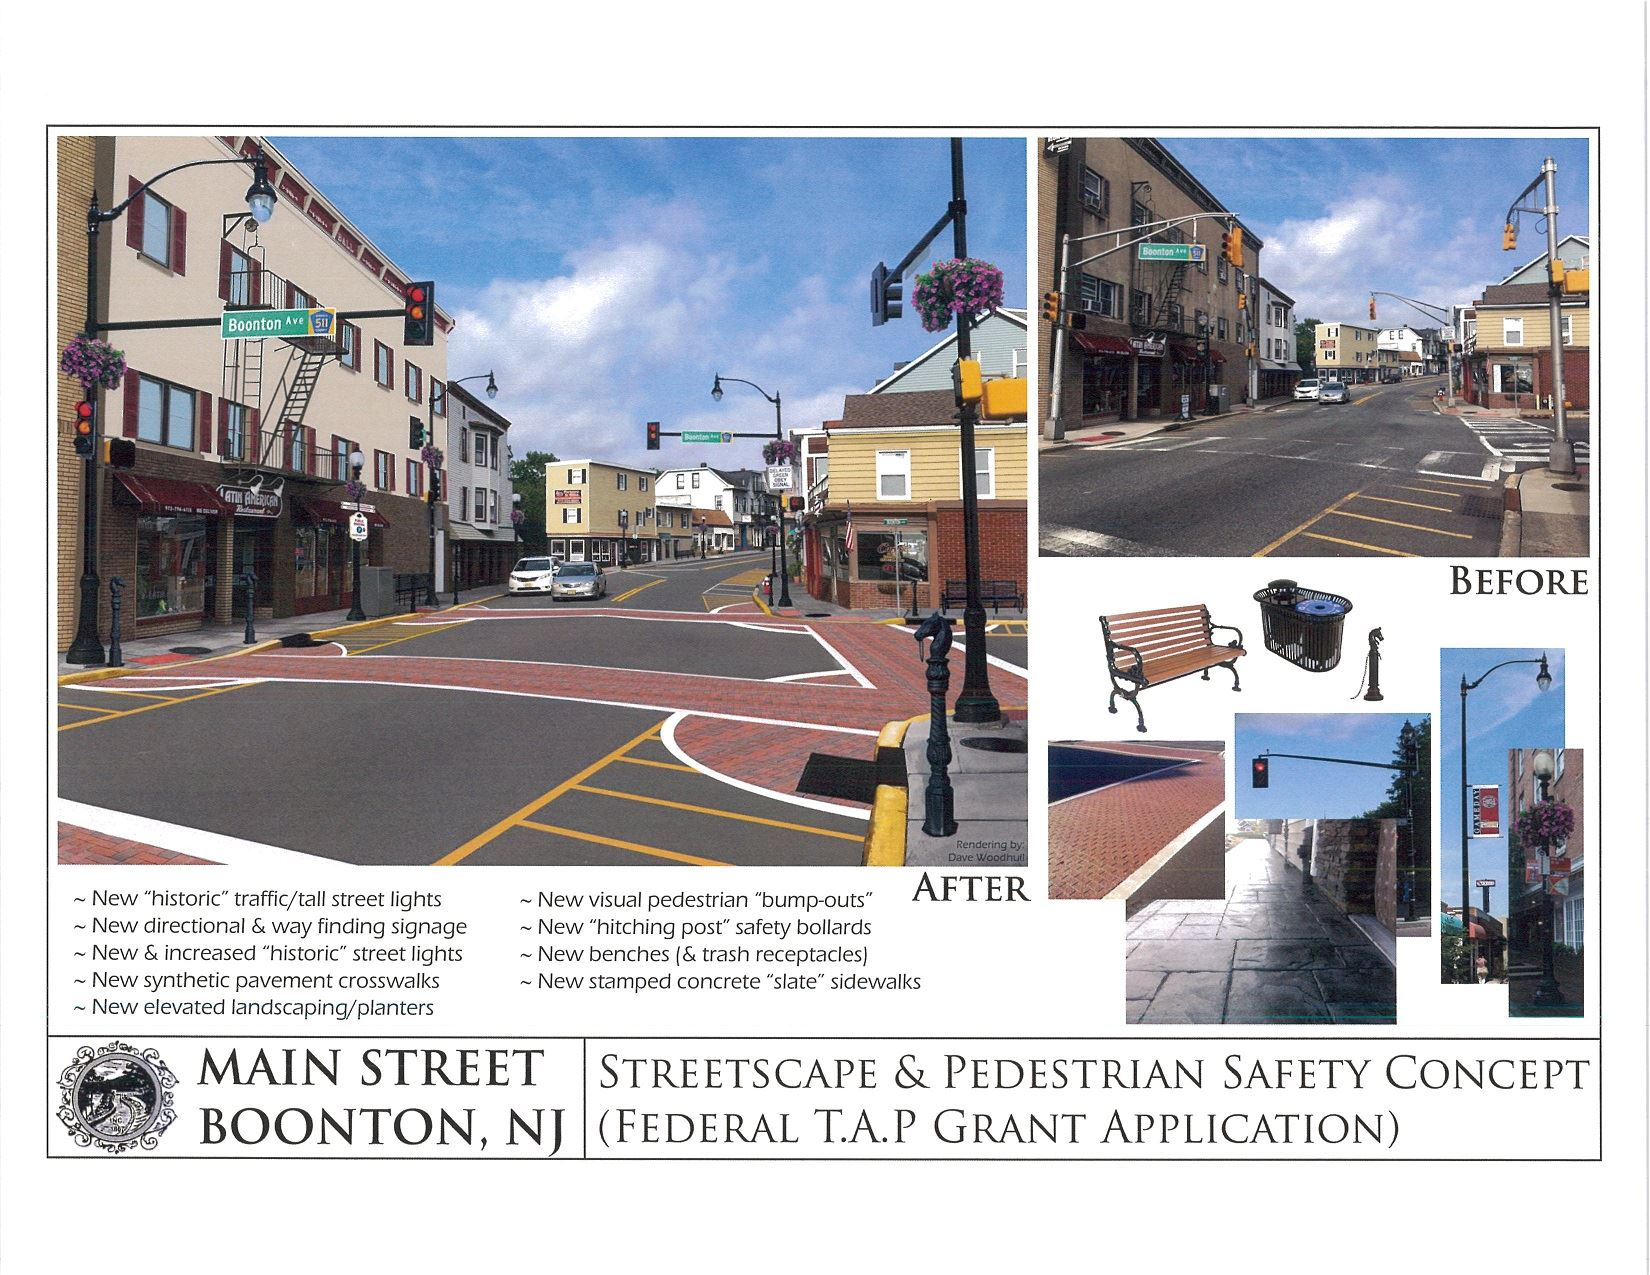 Color Rendering of streetscape and pedestiran safety concept